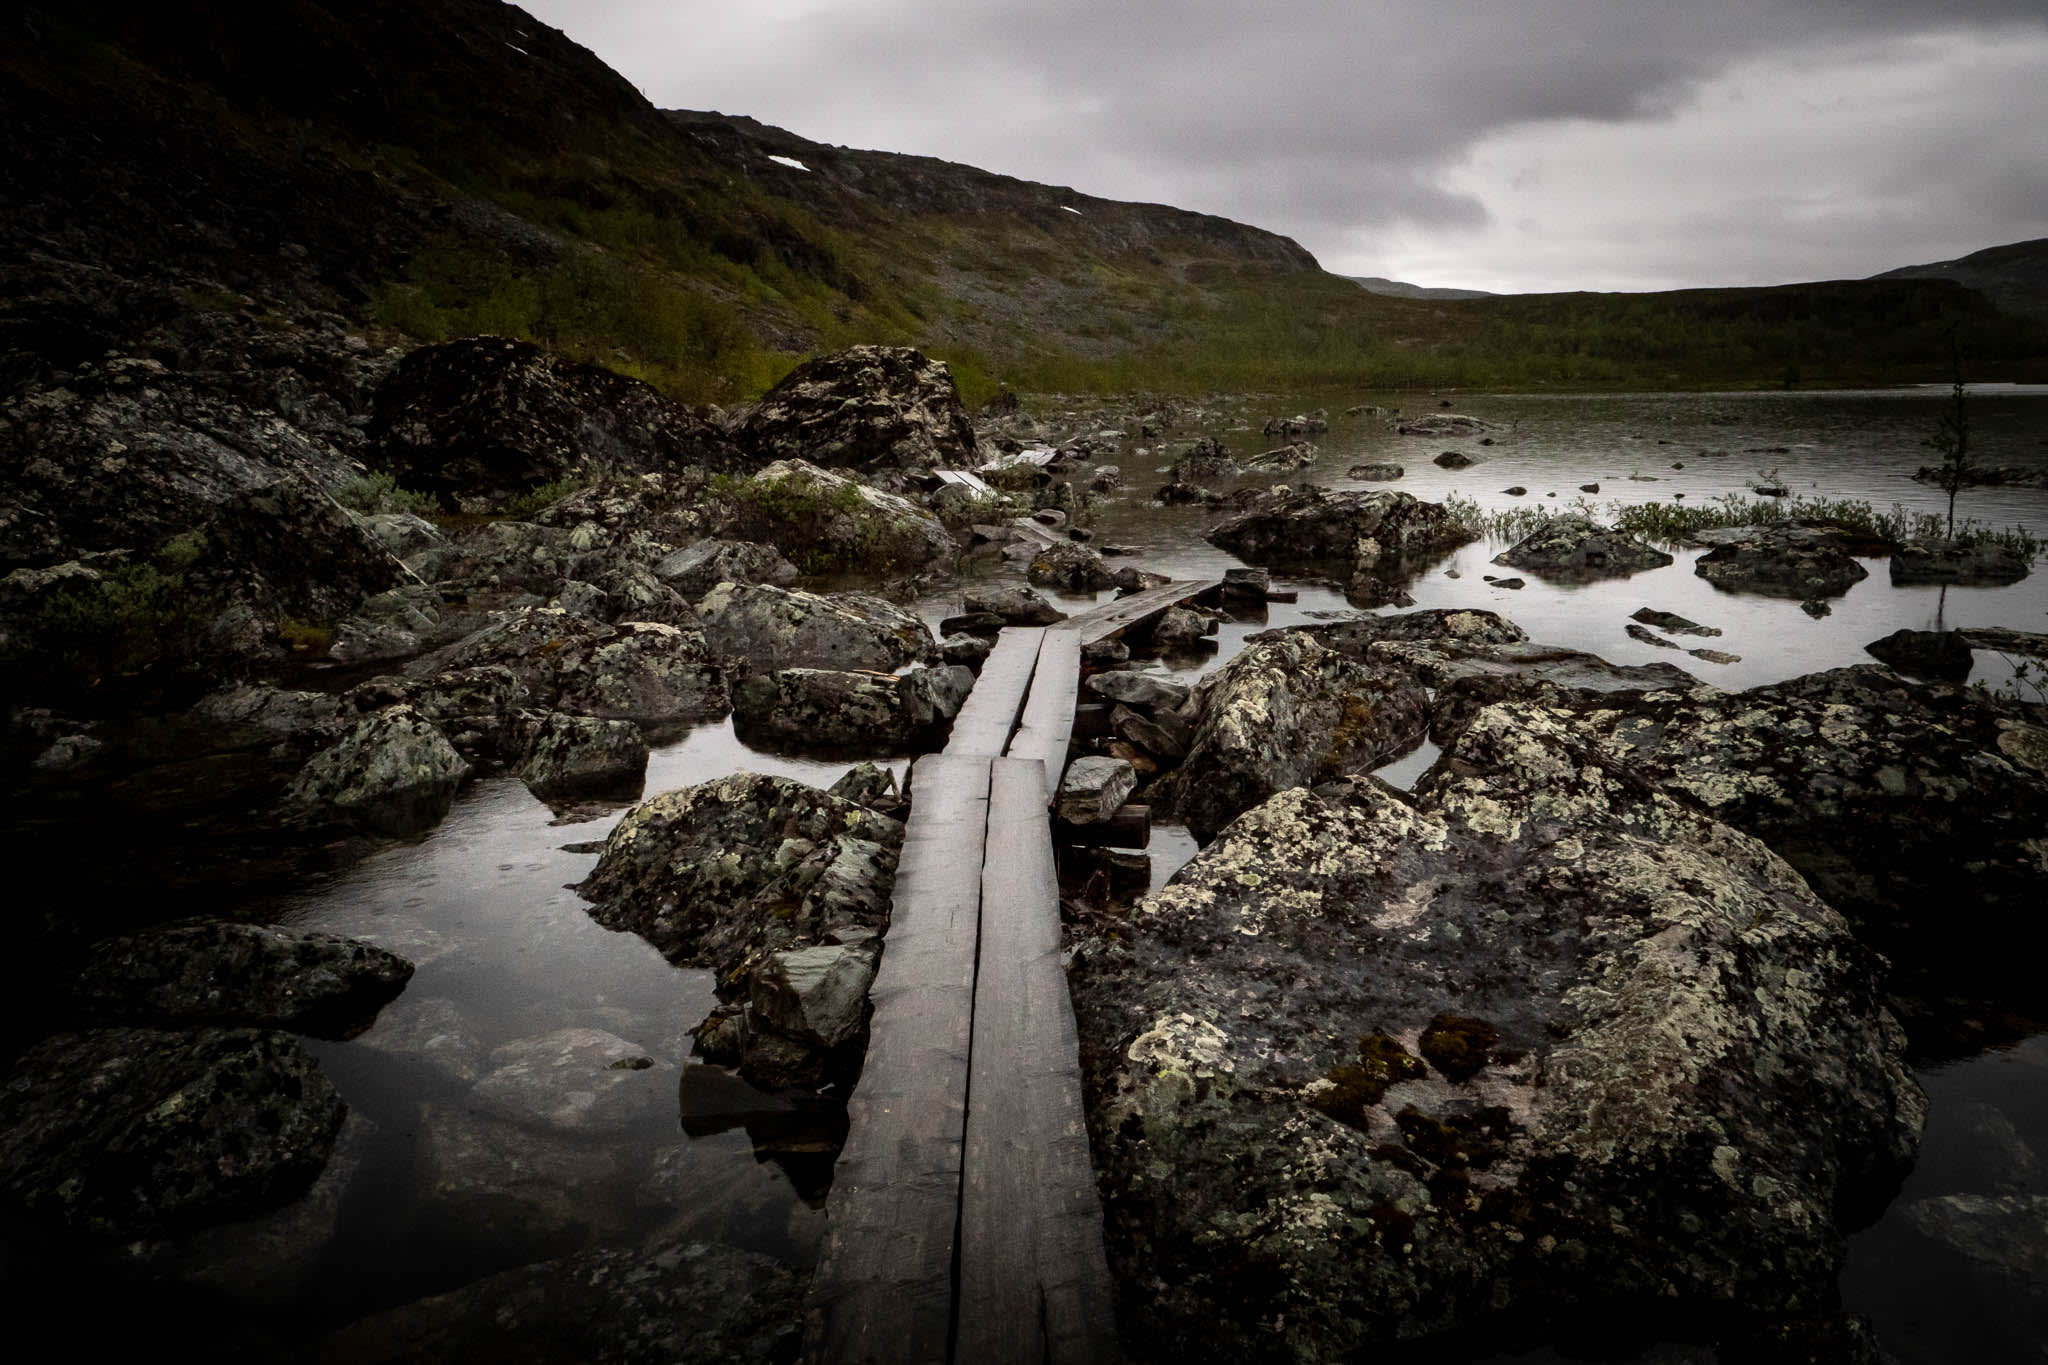 Nordic Nature with path across the rocks and pond